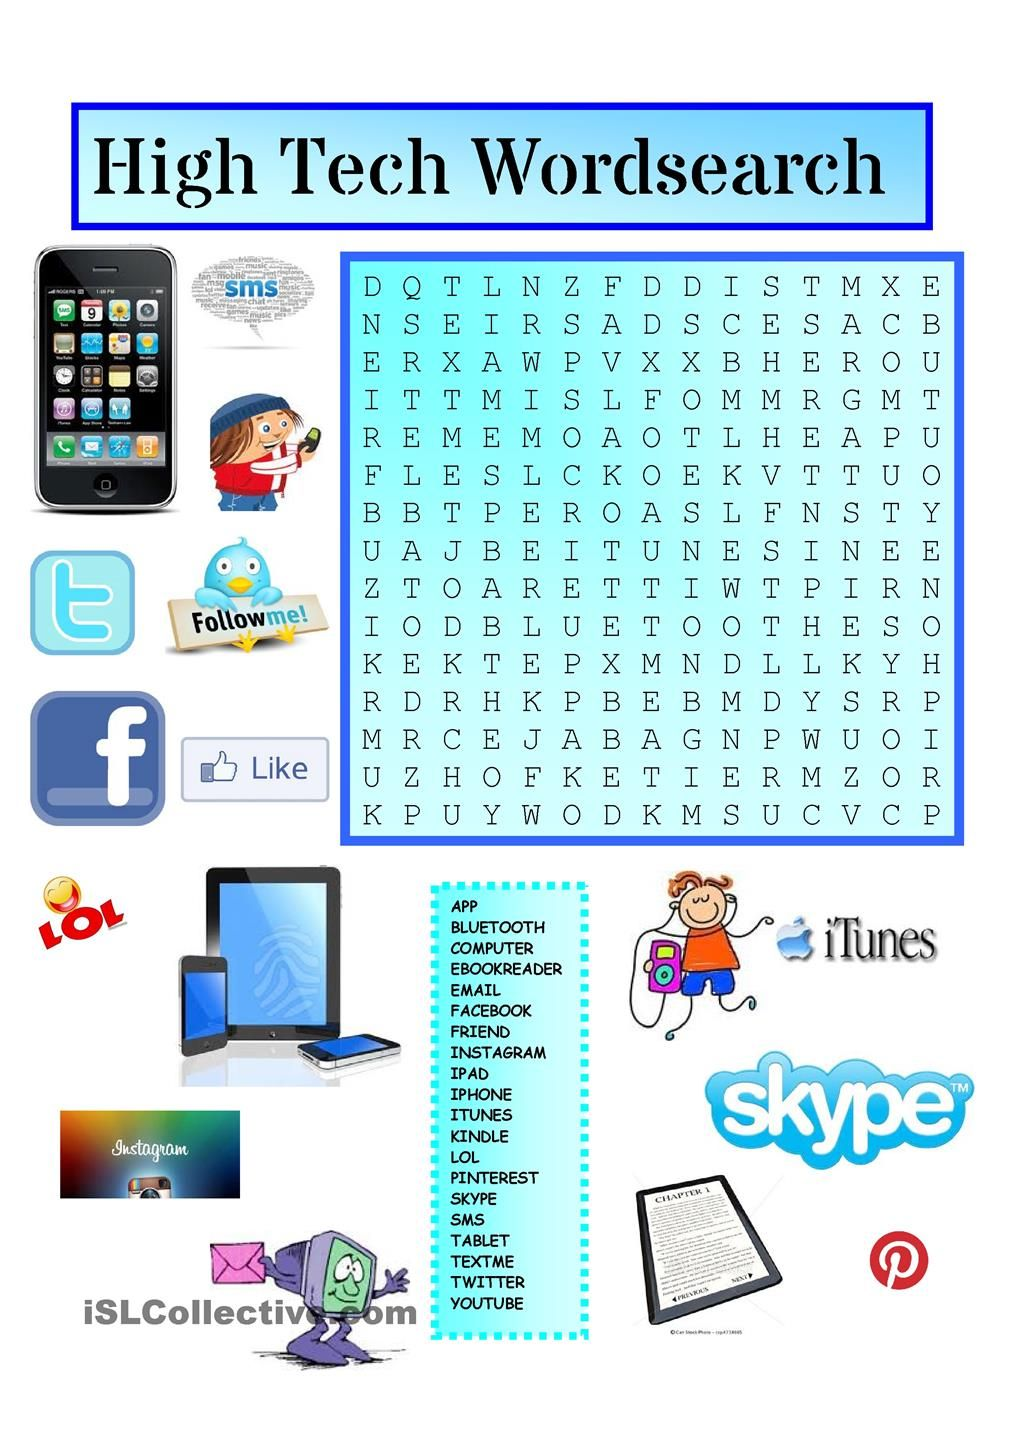 High Tech Wordsearch with KEY | ingilizce öğrenme ! in 2018 ...